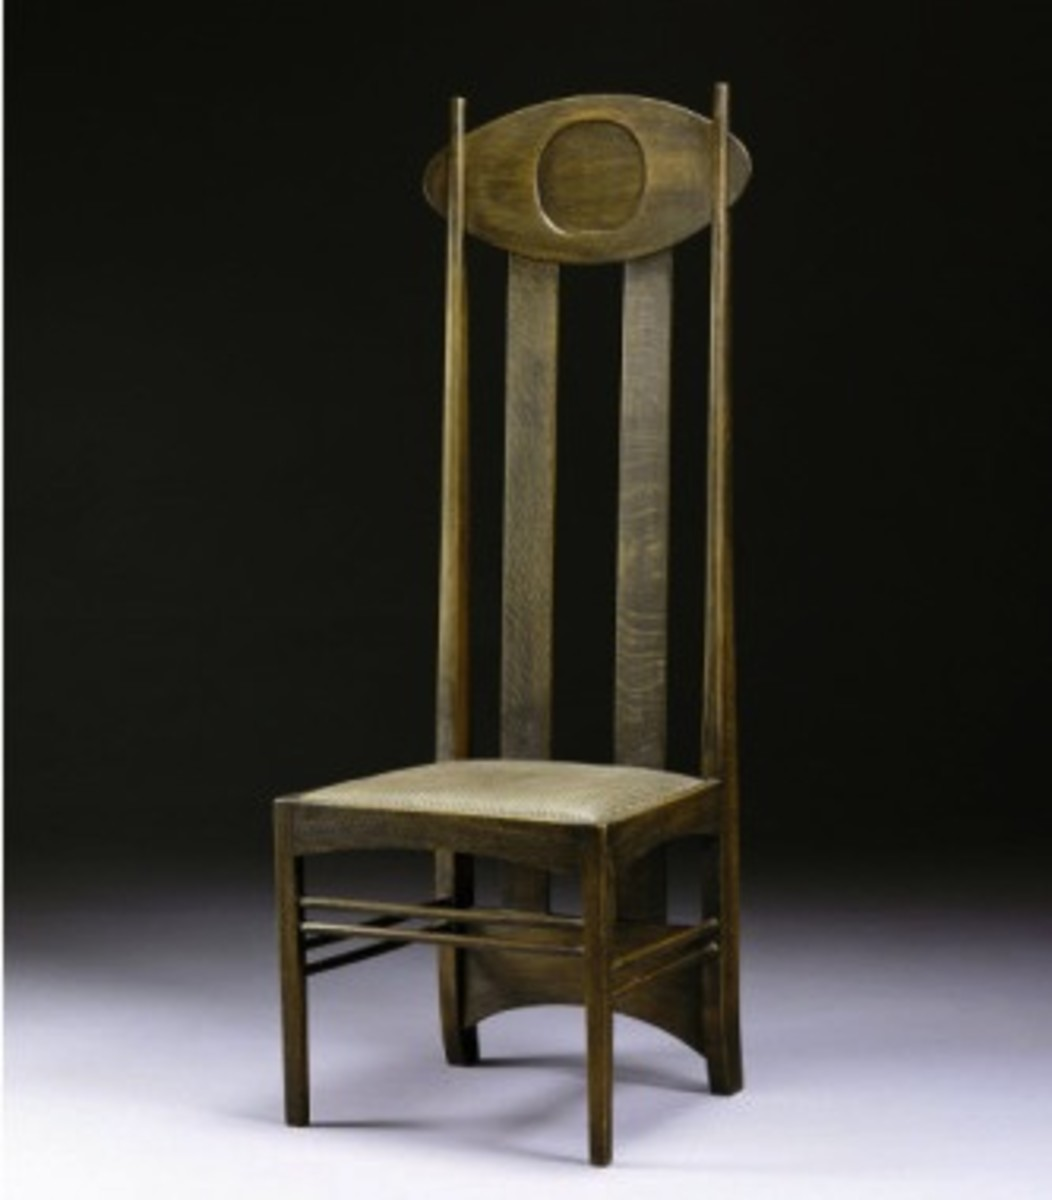 High-Back Oak Chair by Charles Rennie Mackintos circa 1898.